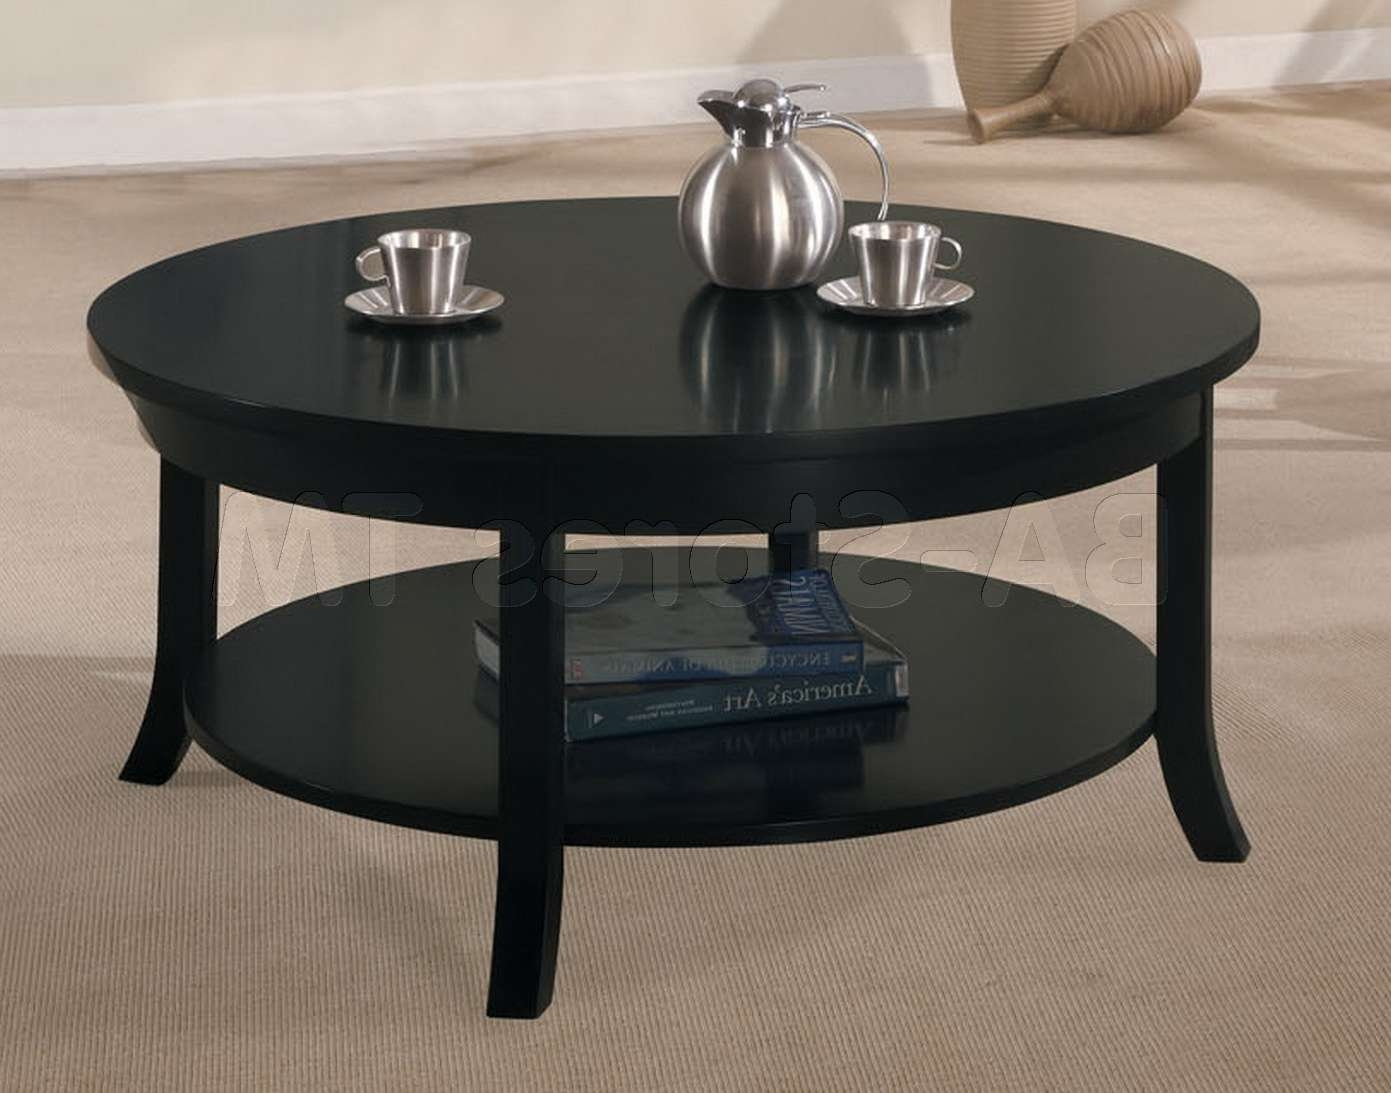 Newest Black Coffee Tables Intended For Coffee Table : Black Coffee And End Table Sets Kit4en Com Round (View 12 of 20)